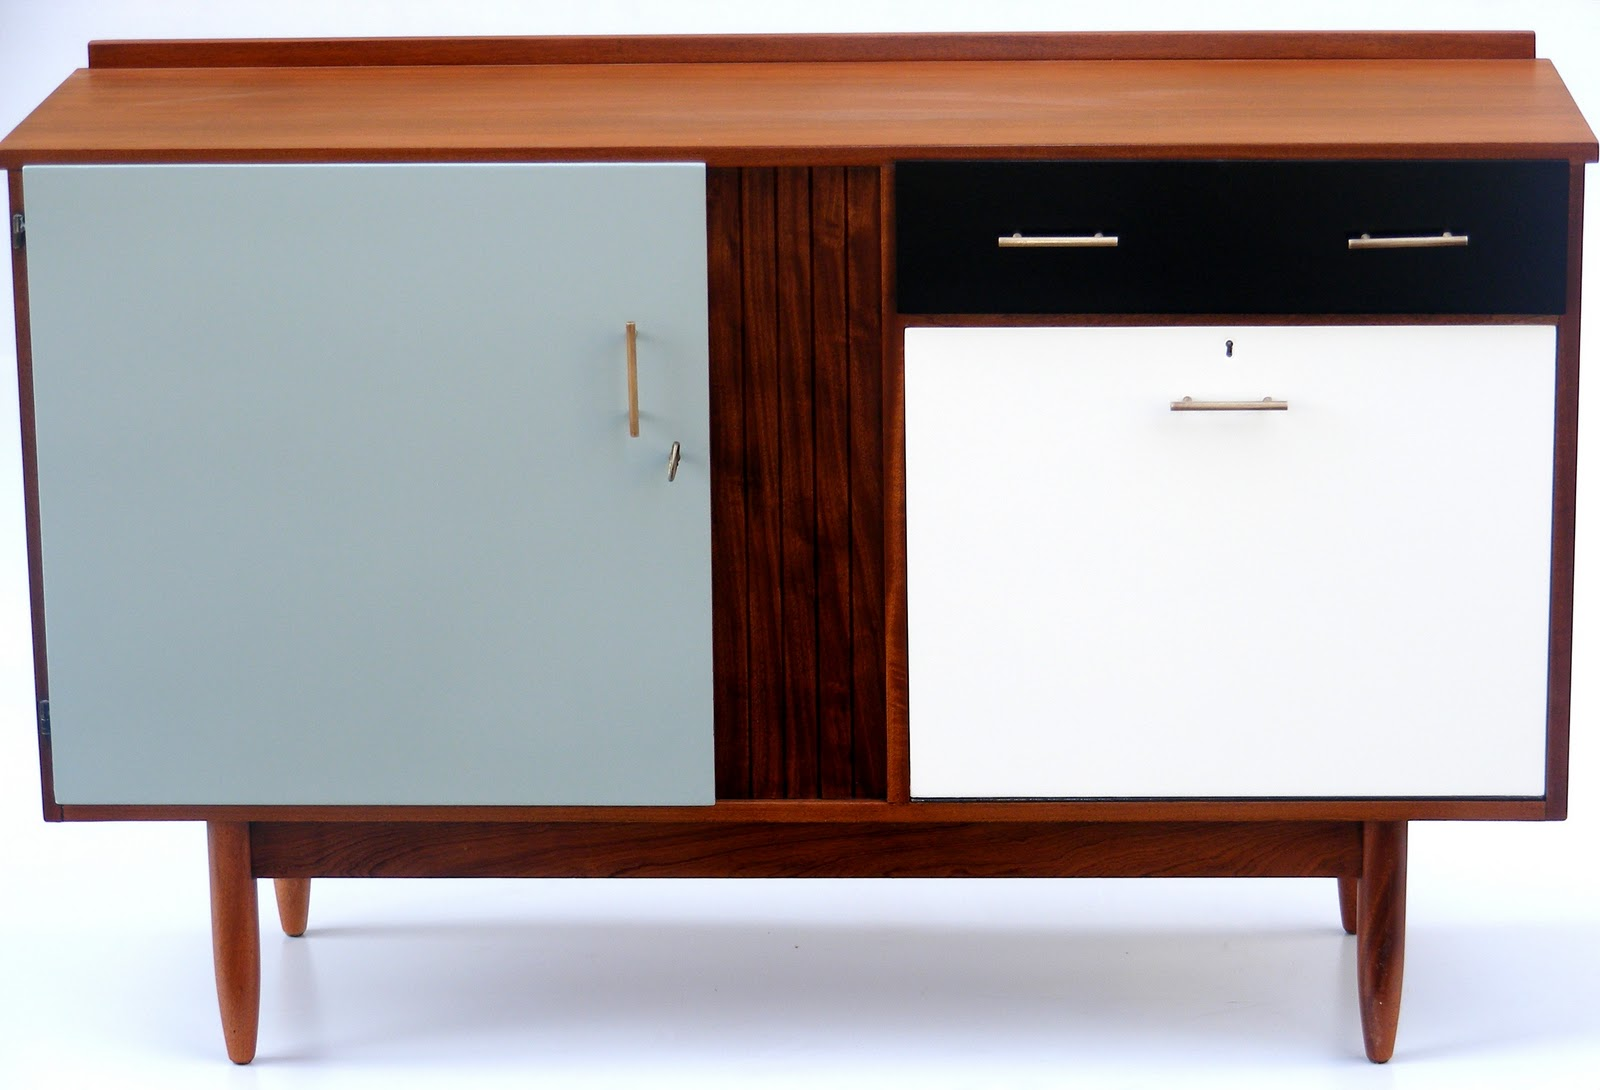 The awesome Kitchen sideboard furniture images